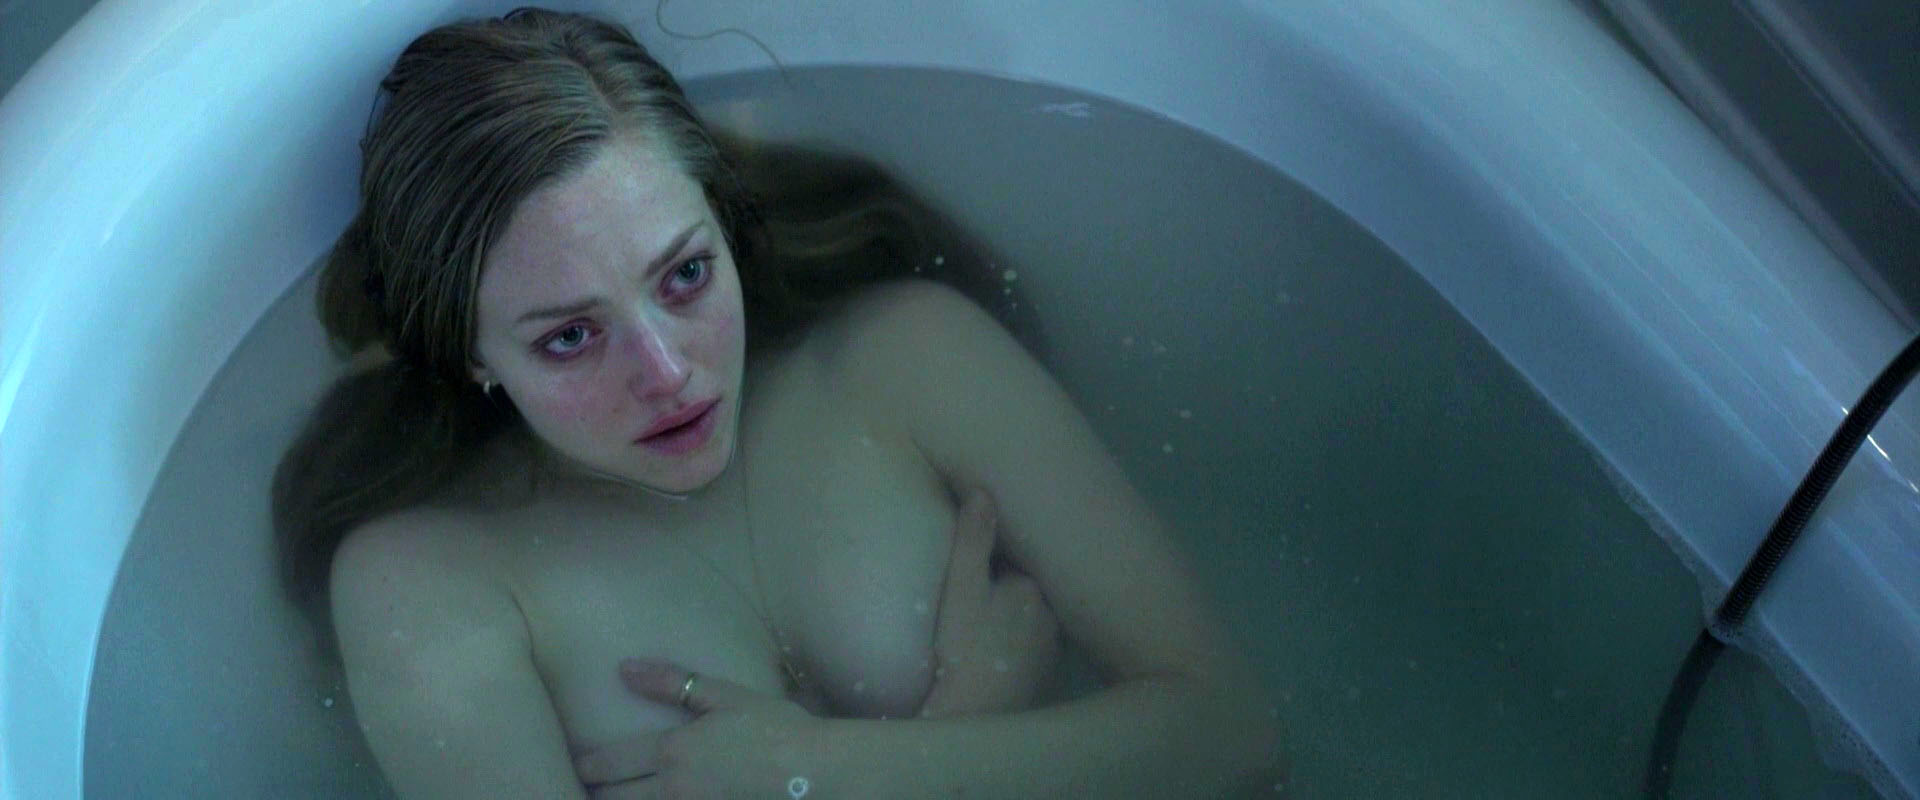 Amanda Sex Movie watch online - amanda seyfried – fathers and daughters (2015